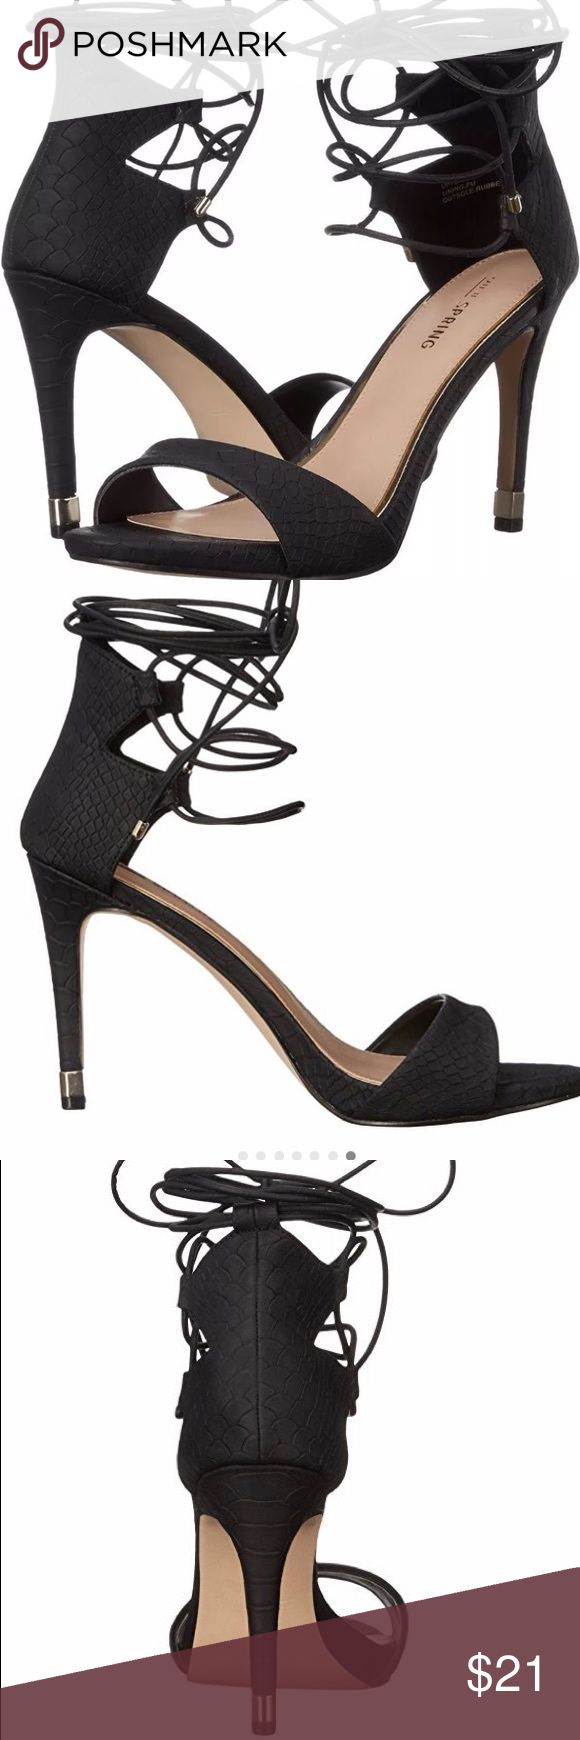 Call It Spring Women's ATNARKO dress Sandal Ladies high heel ghillie sandal. New with box Shoes Sandals